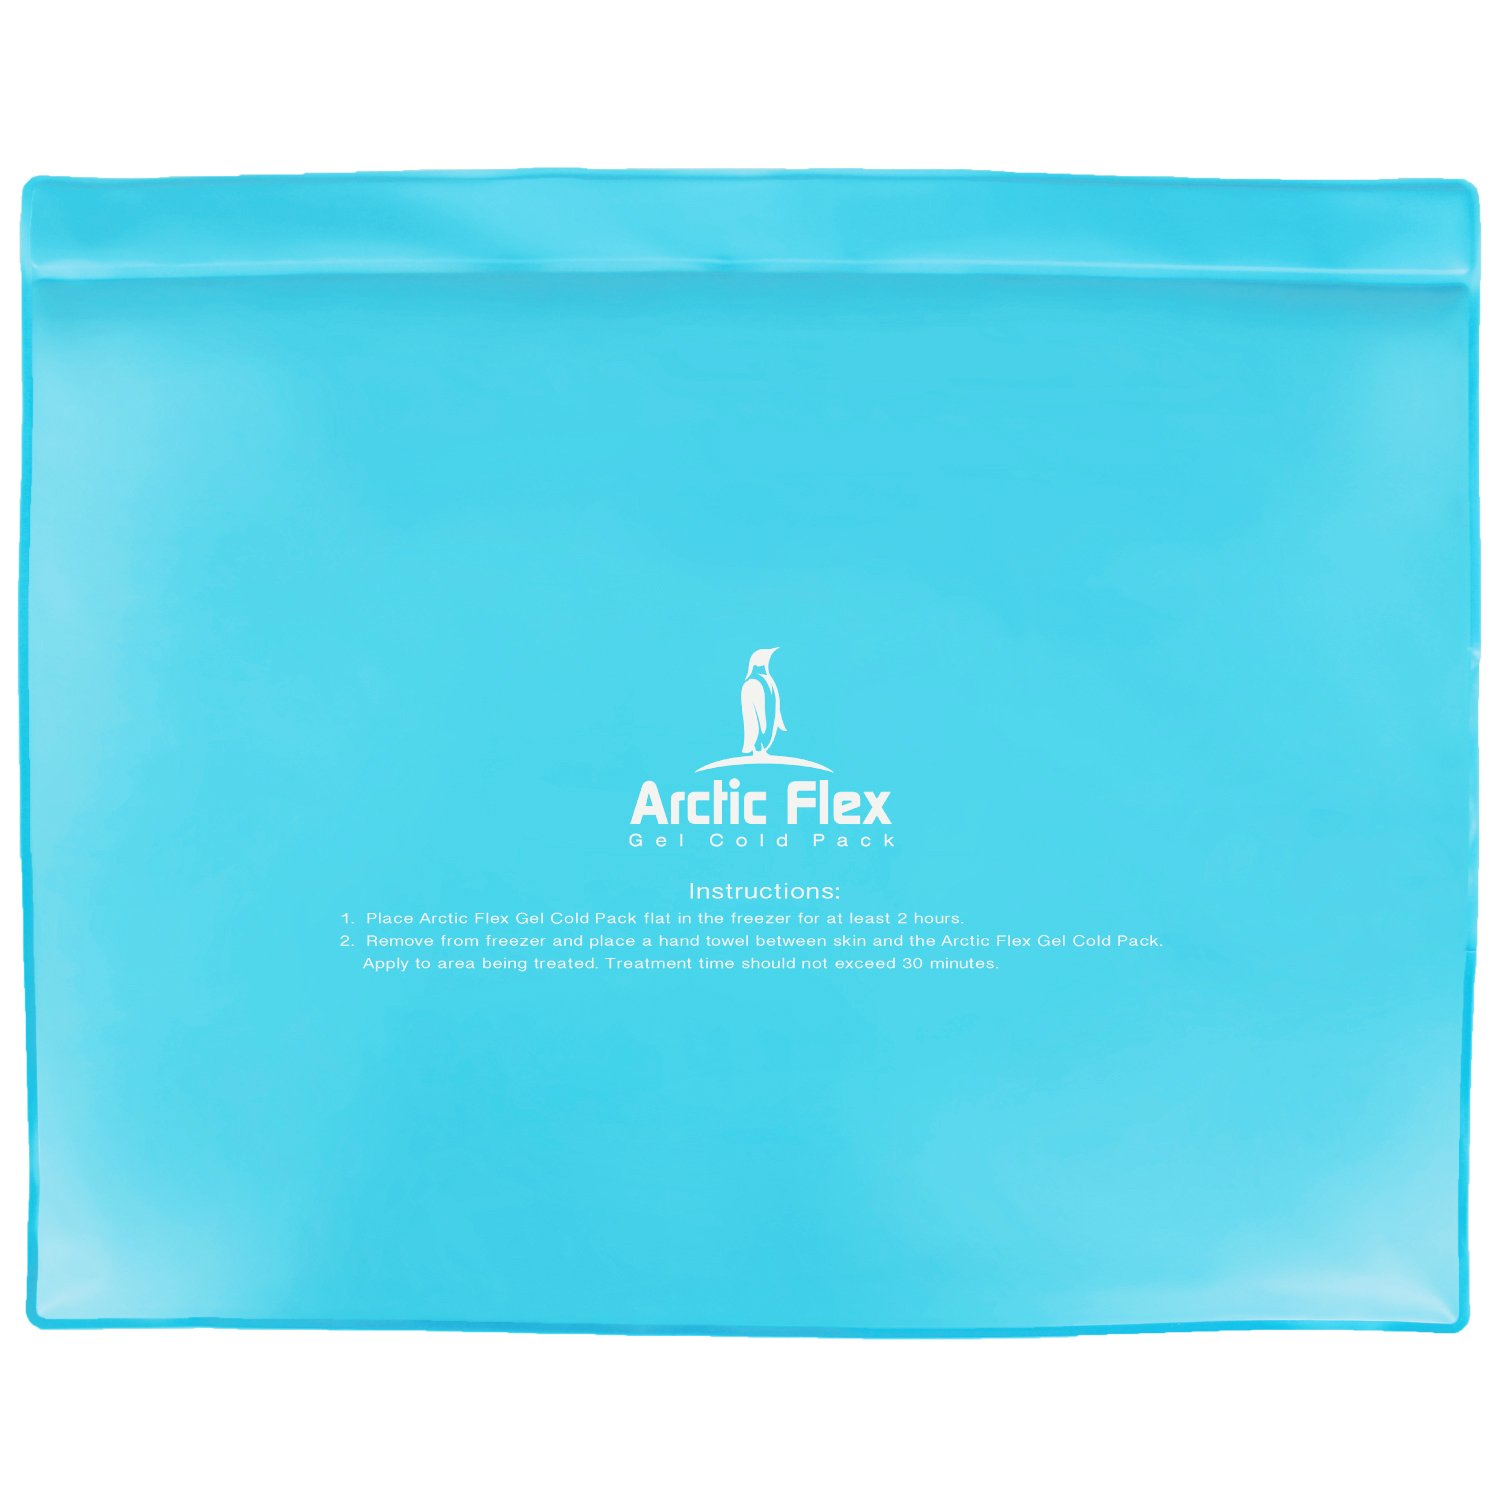 "Arctic Flex Gel Ice Pack - Cold Therapy Ice Bag - Reusable Medical Freezer Pad - Hot/Heated Compress Wrap for Knee, Shoulder, Back and Ankle - Flexible, Soft & Instant (11"" x 14"")"